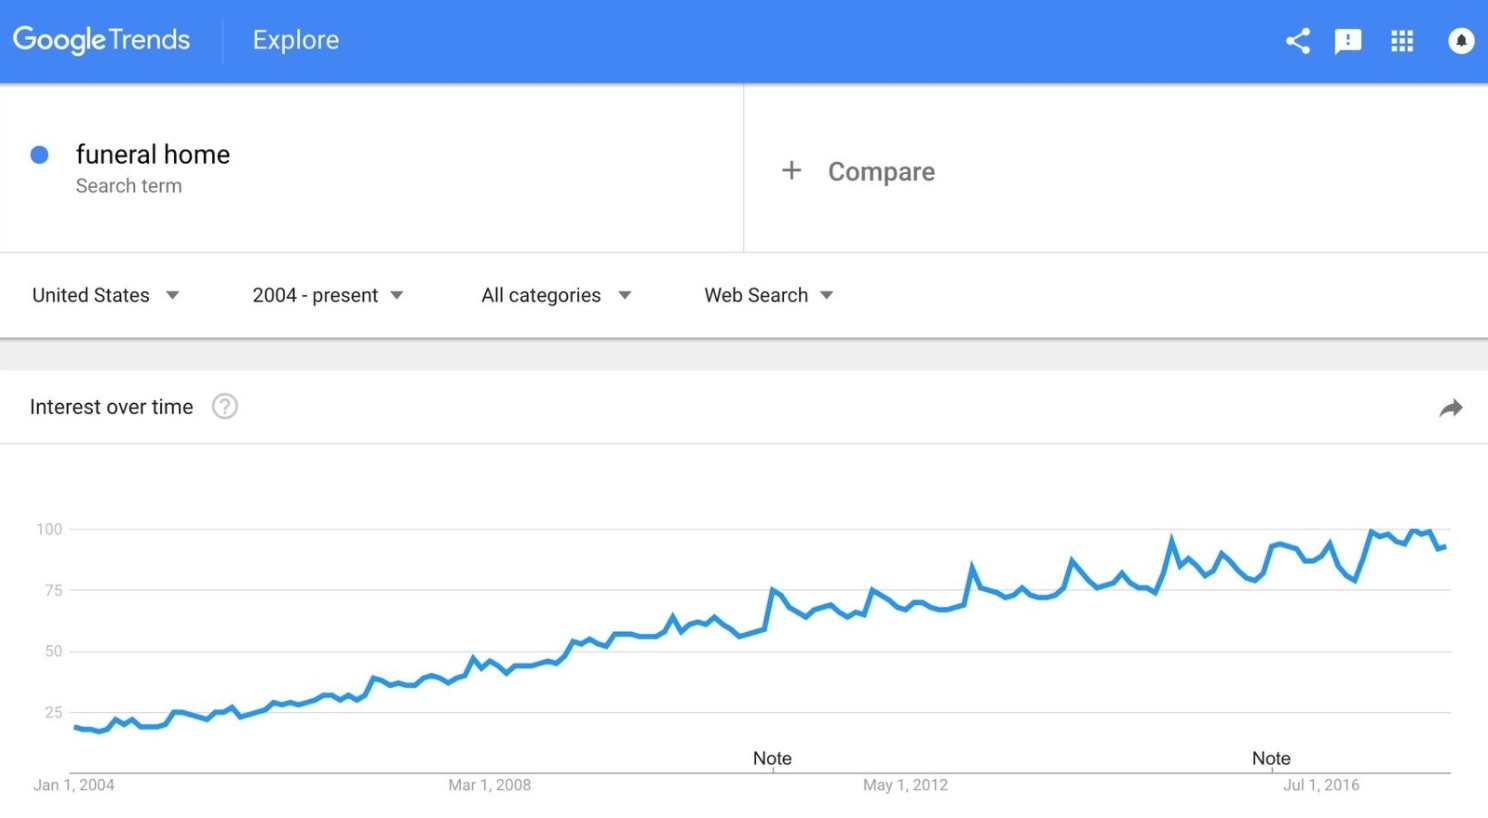 Winter is Coming - 3 - Google Search Volume for Funeral Home